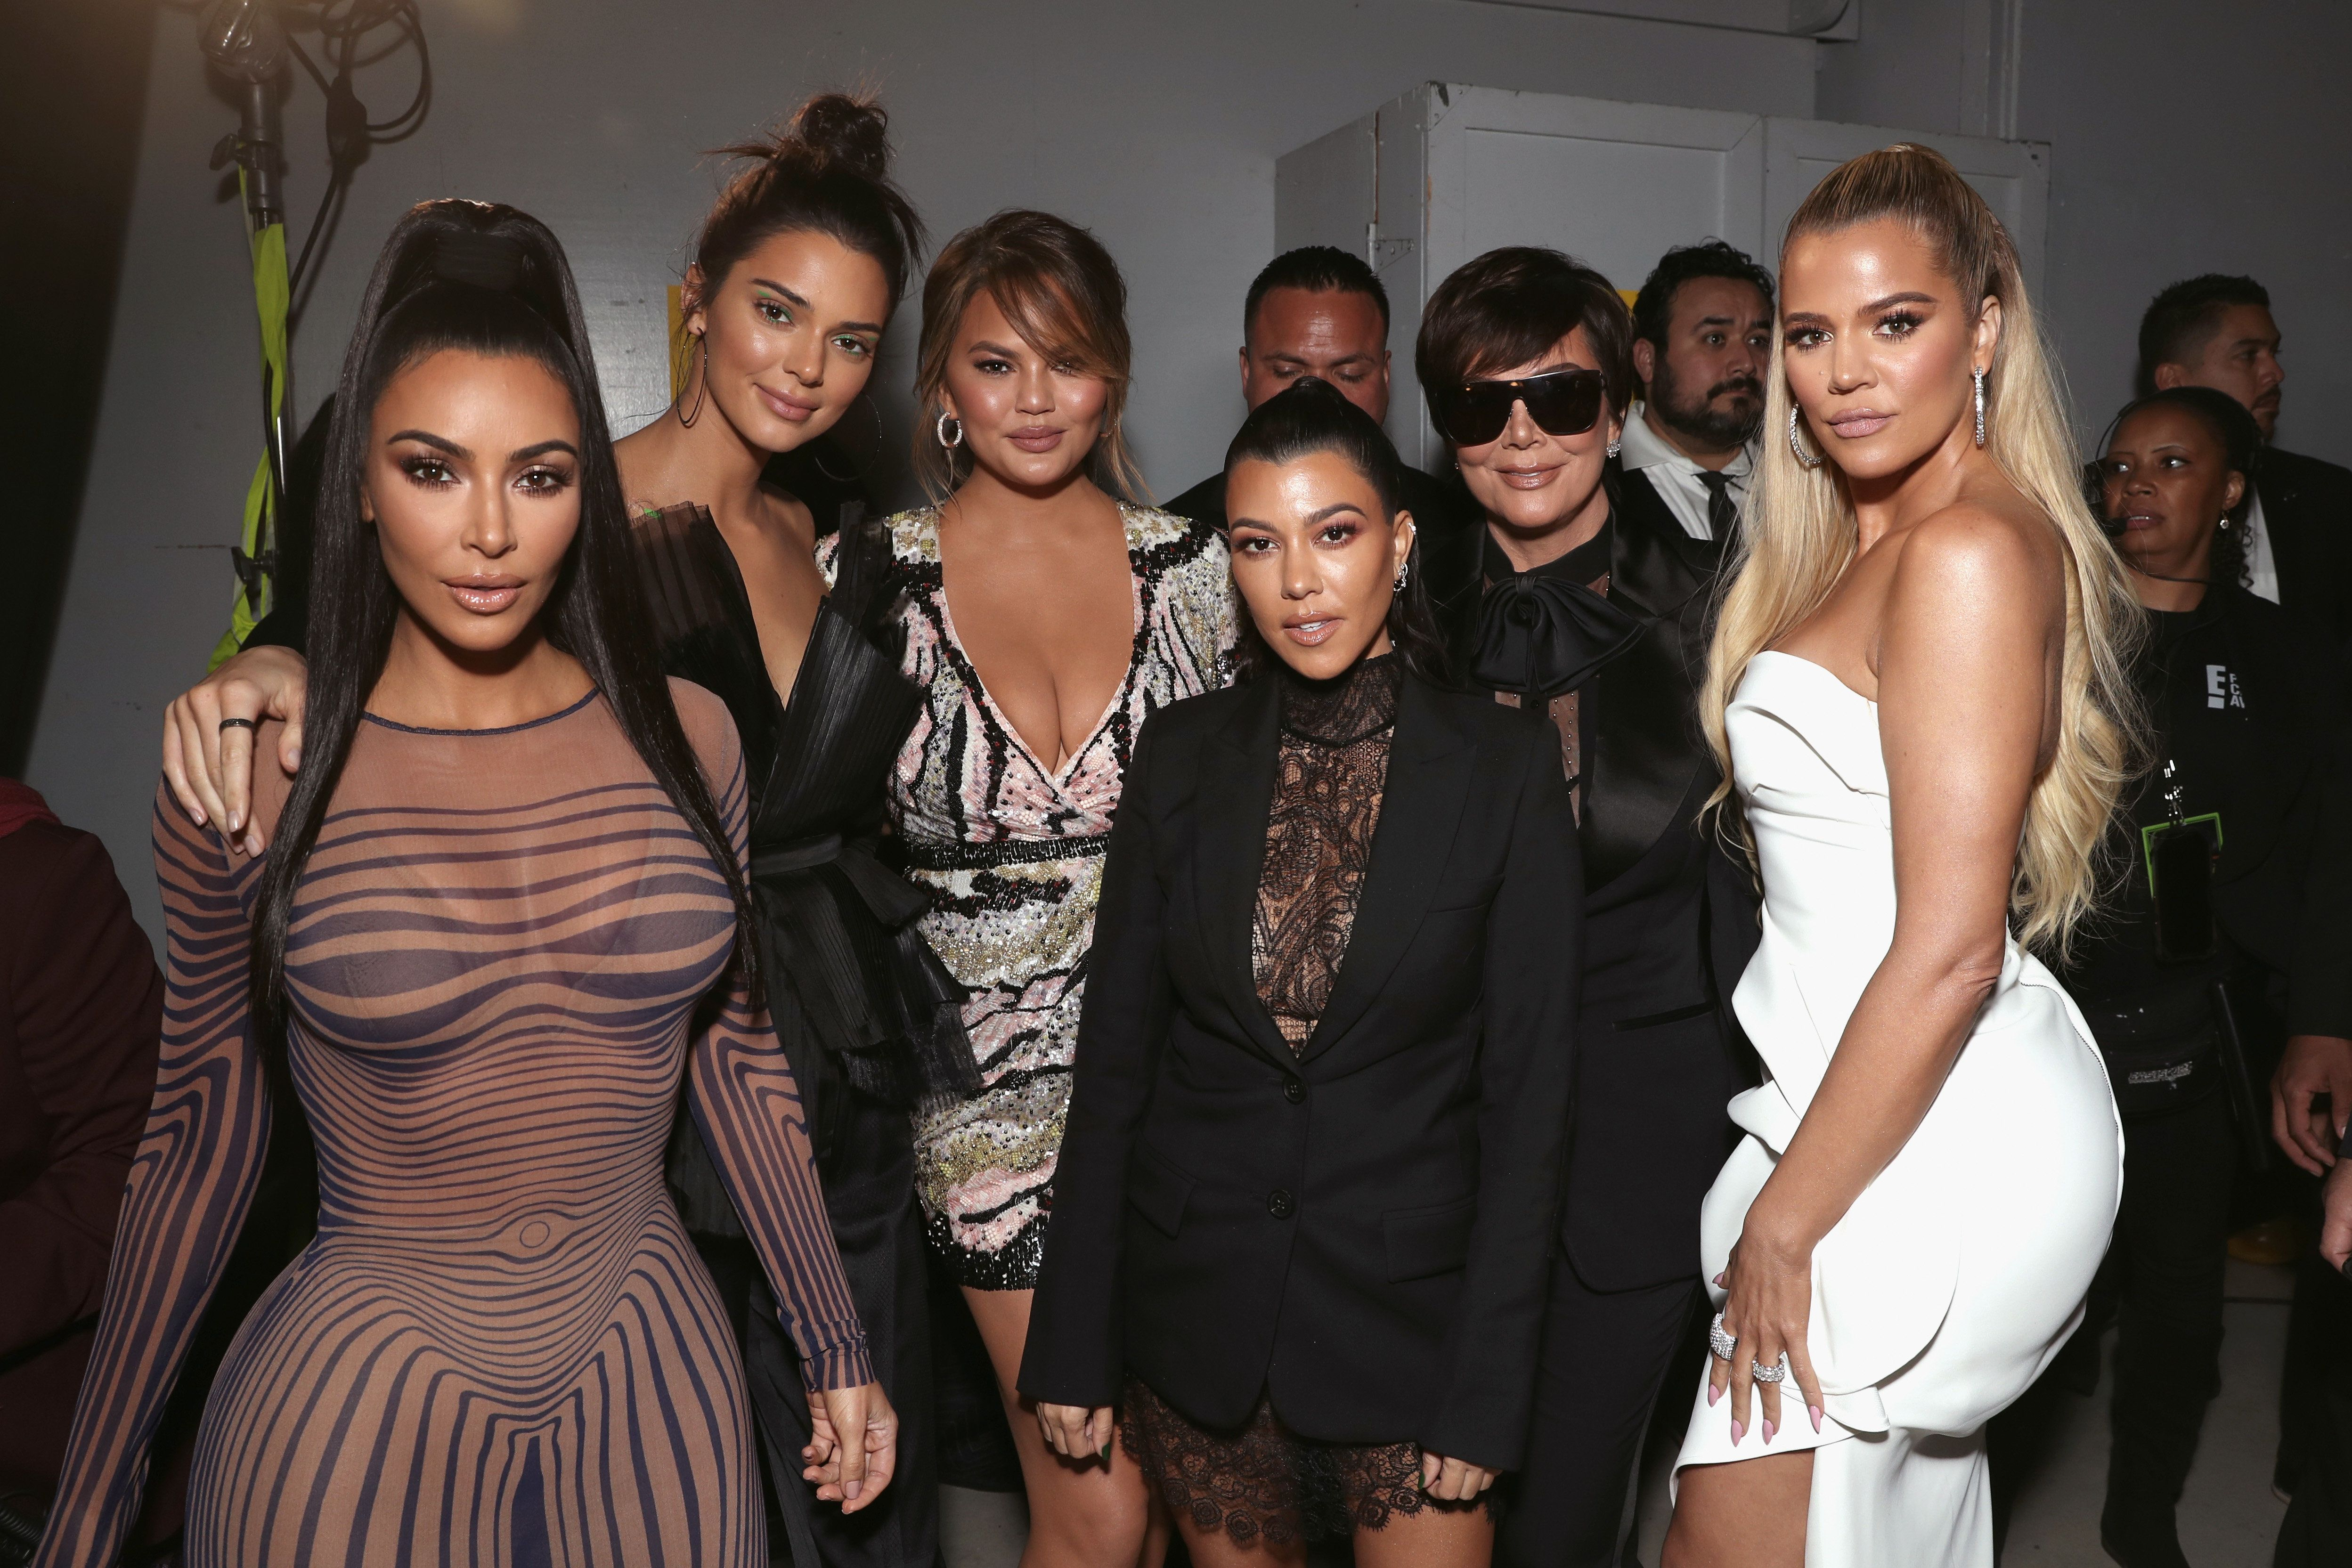 The KarJenner family poses with Chrissy Teigen backstage at the People's Choice Awards.